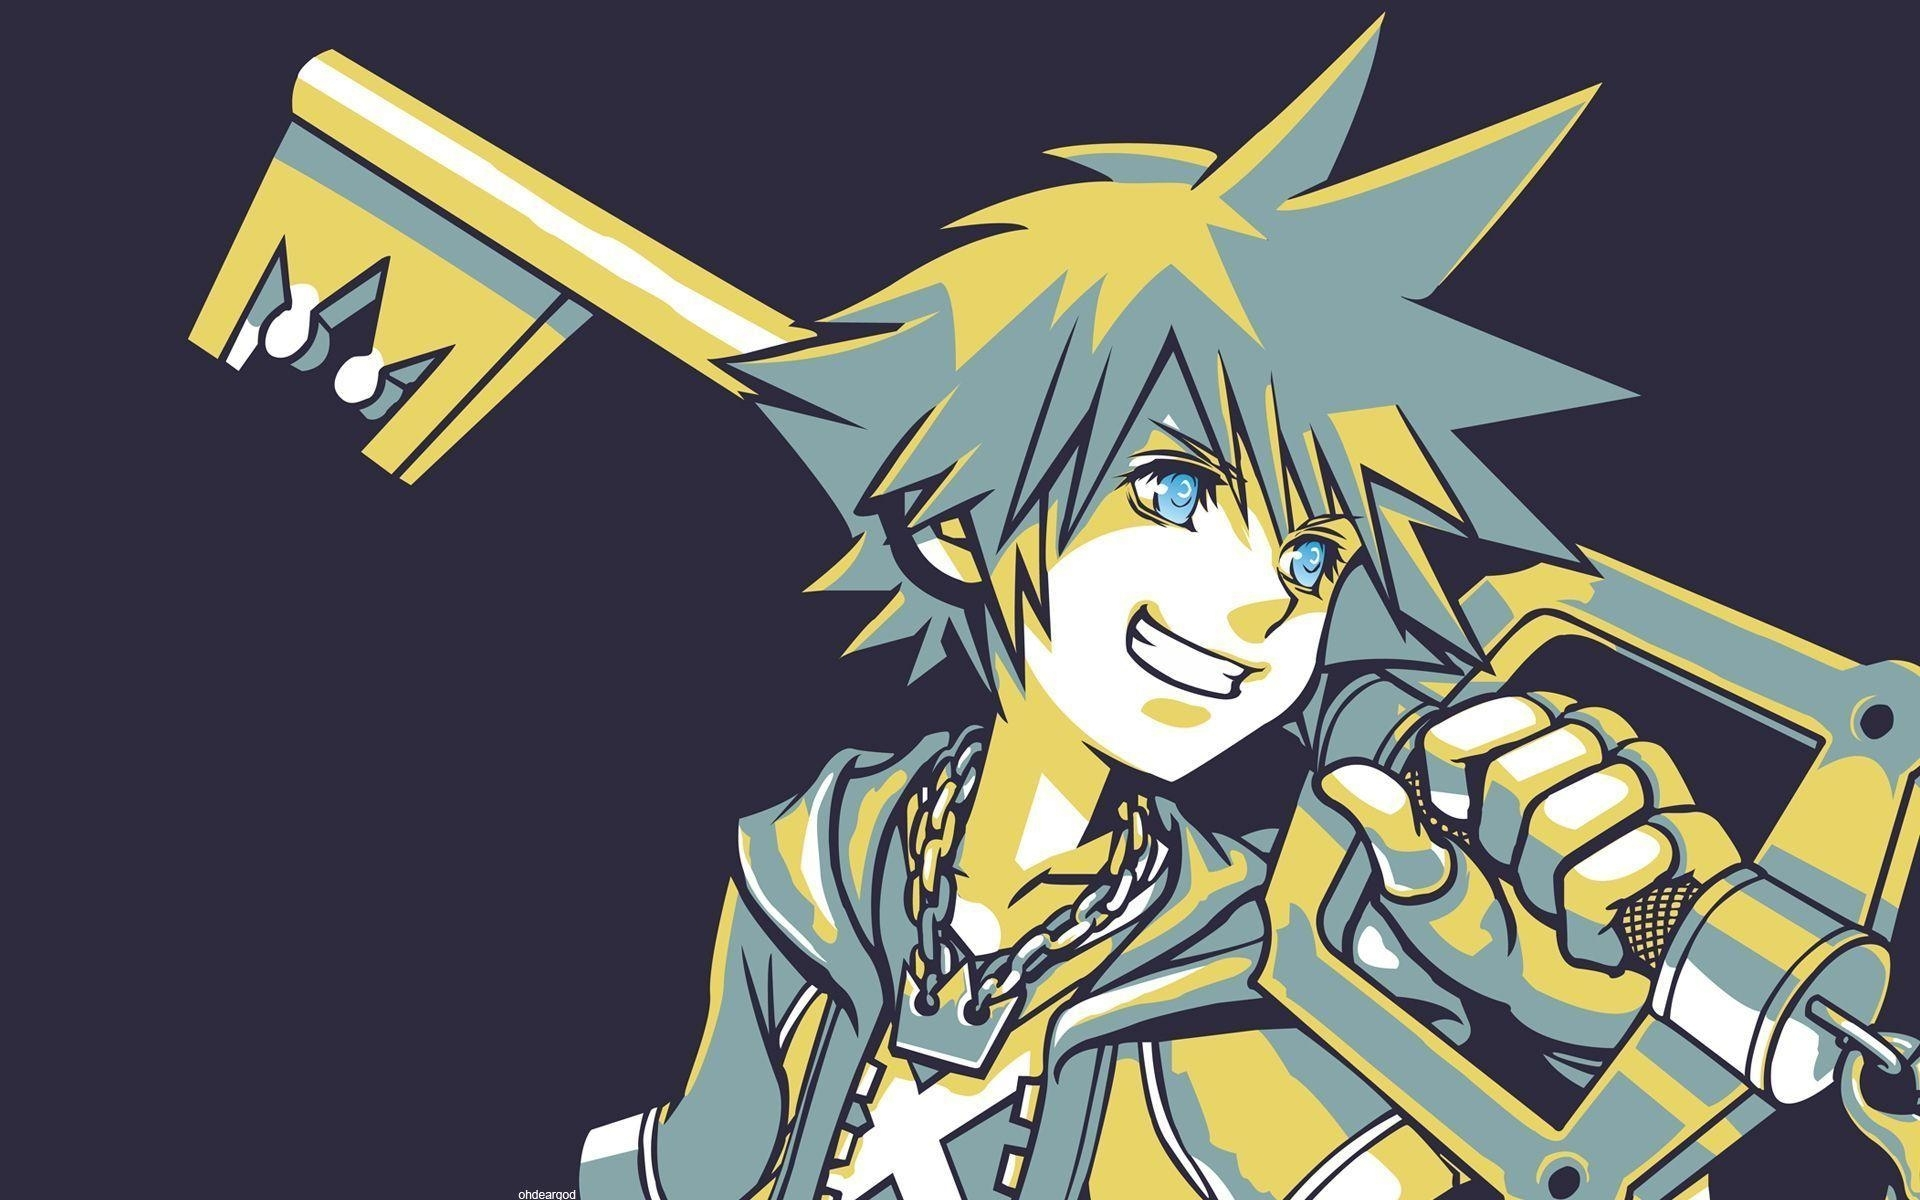 kingdom hearts sora wallpapers - wallpaper cave